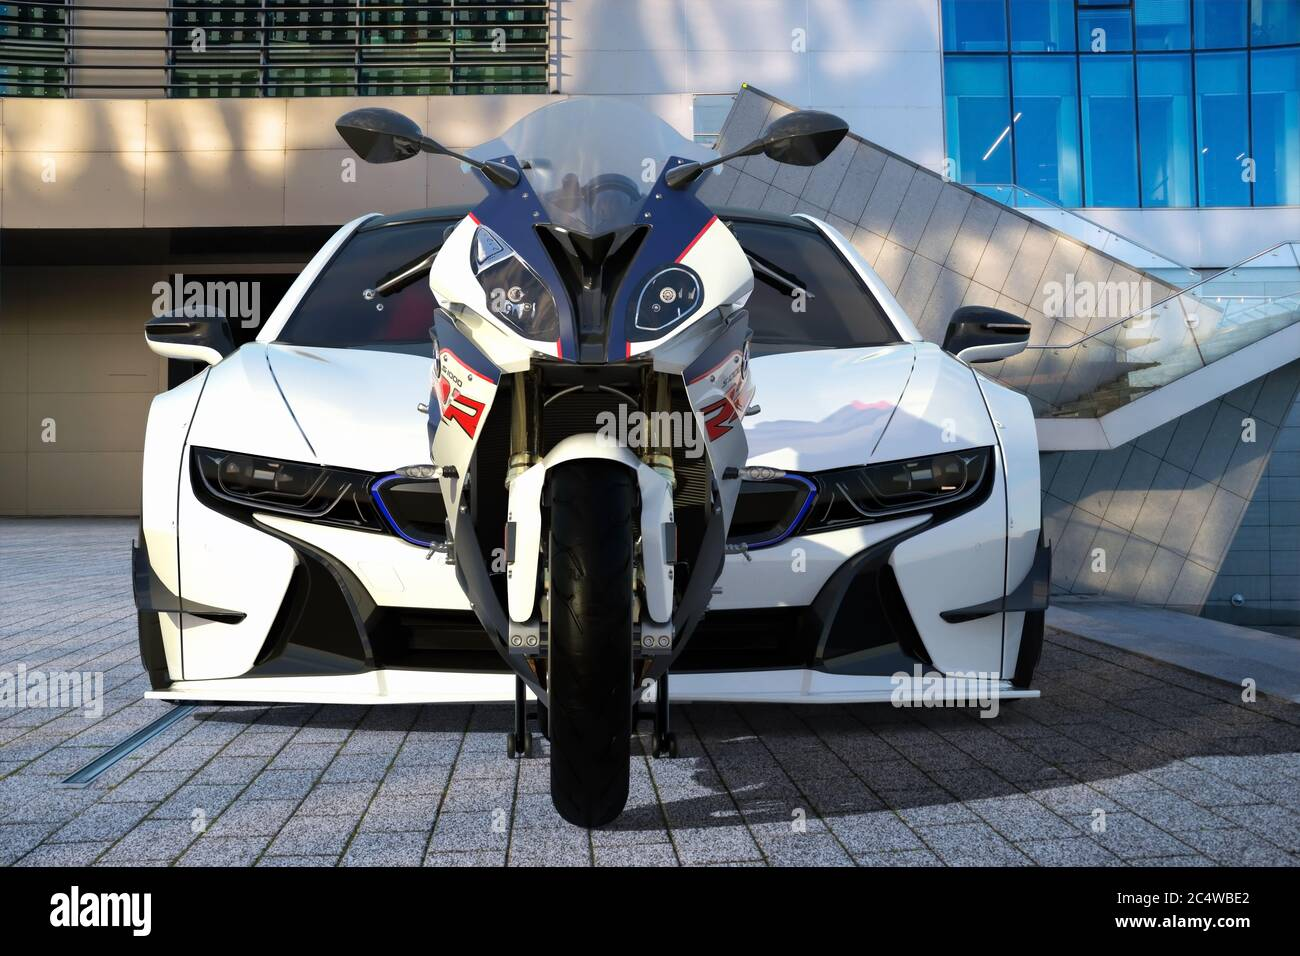 Bmw S1000rr Motorcycle Versus Bmw I8 Electric Sports Coupe Stock Photo Alamy